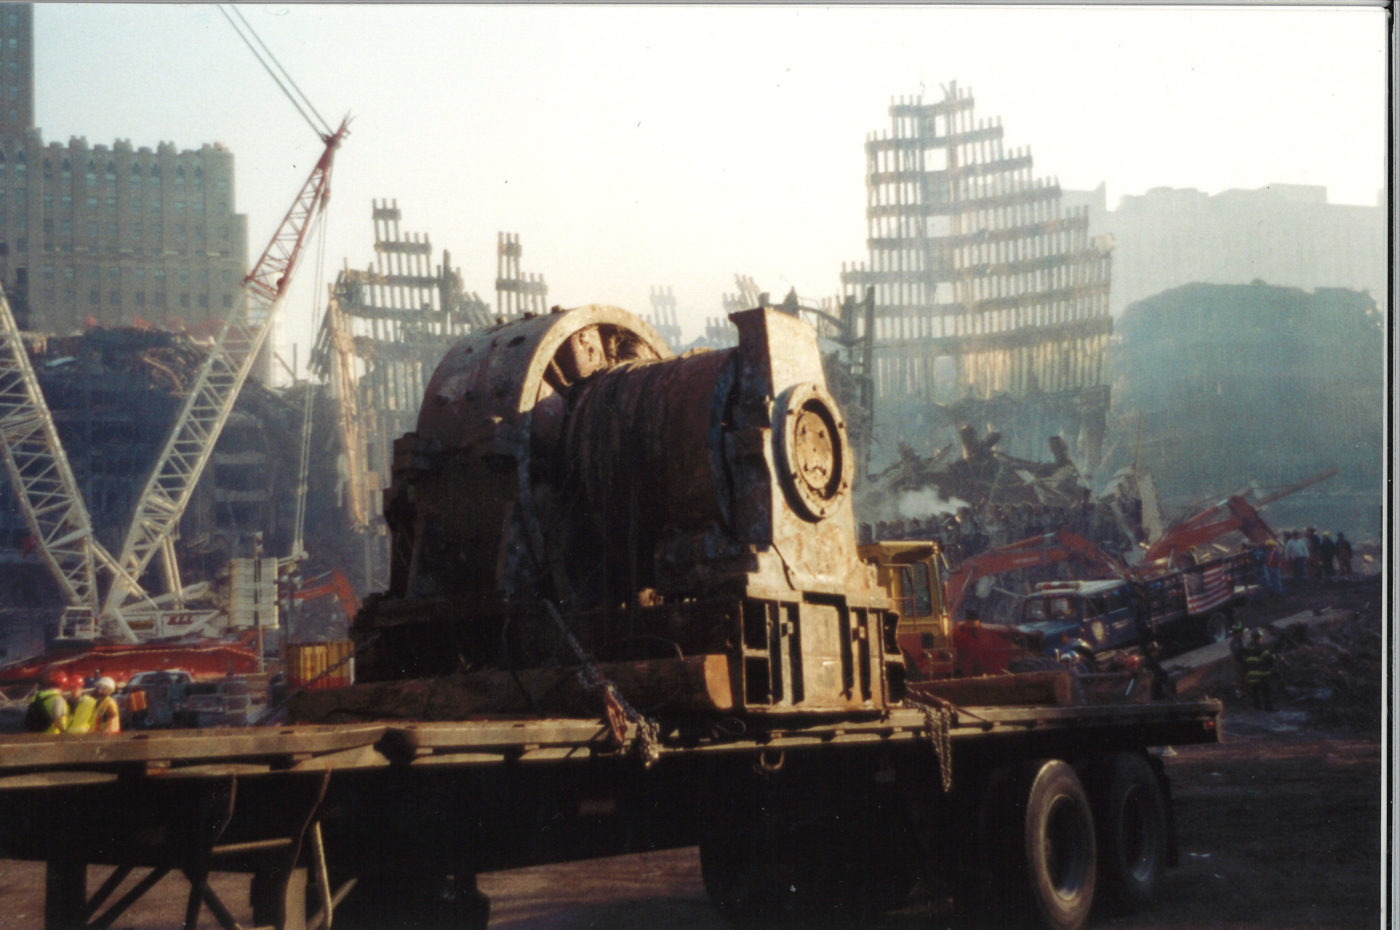 Large Motor on the Back of a Flatbed at Ground Zero